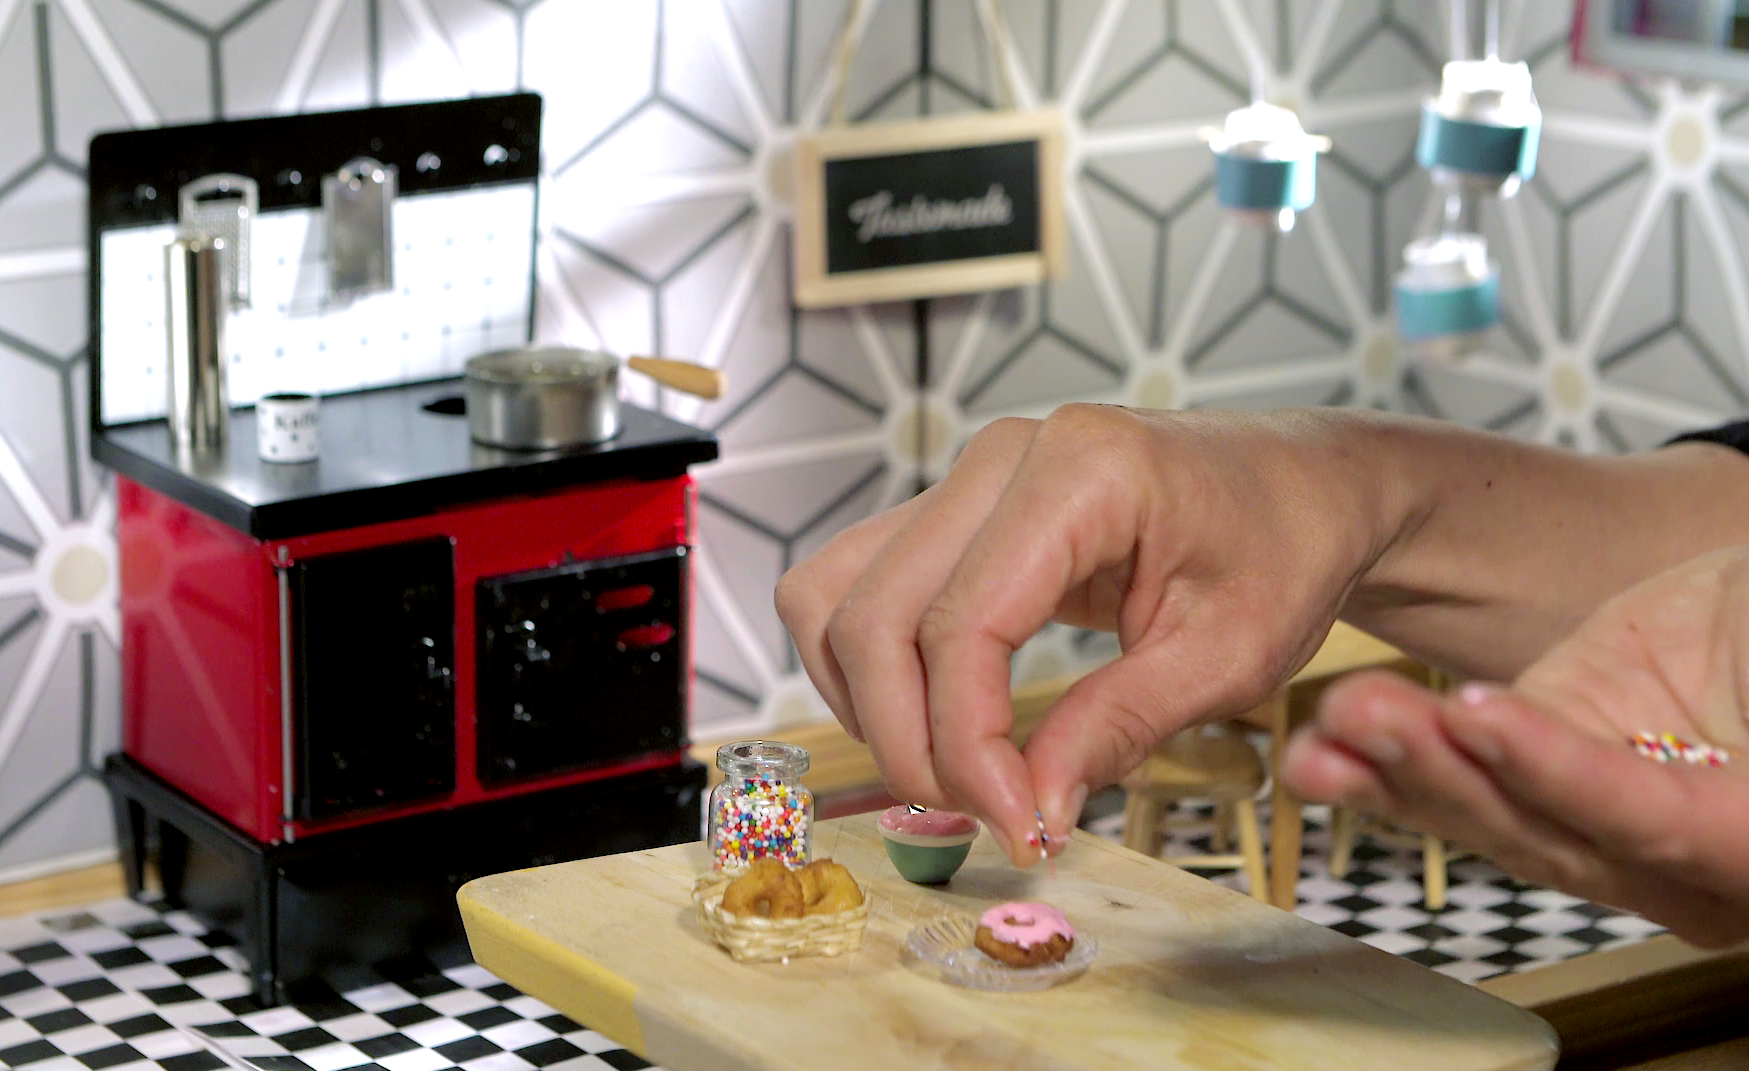 Tiny Kitchen Videos Cook Up Real Food In Doll Sized Portions The Salt Npr